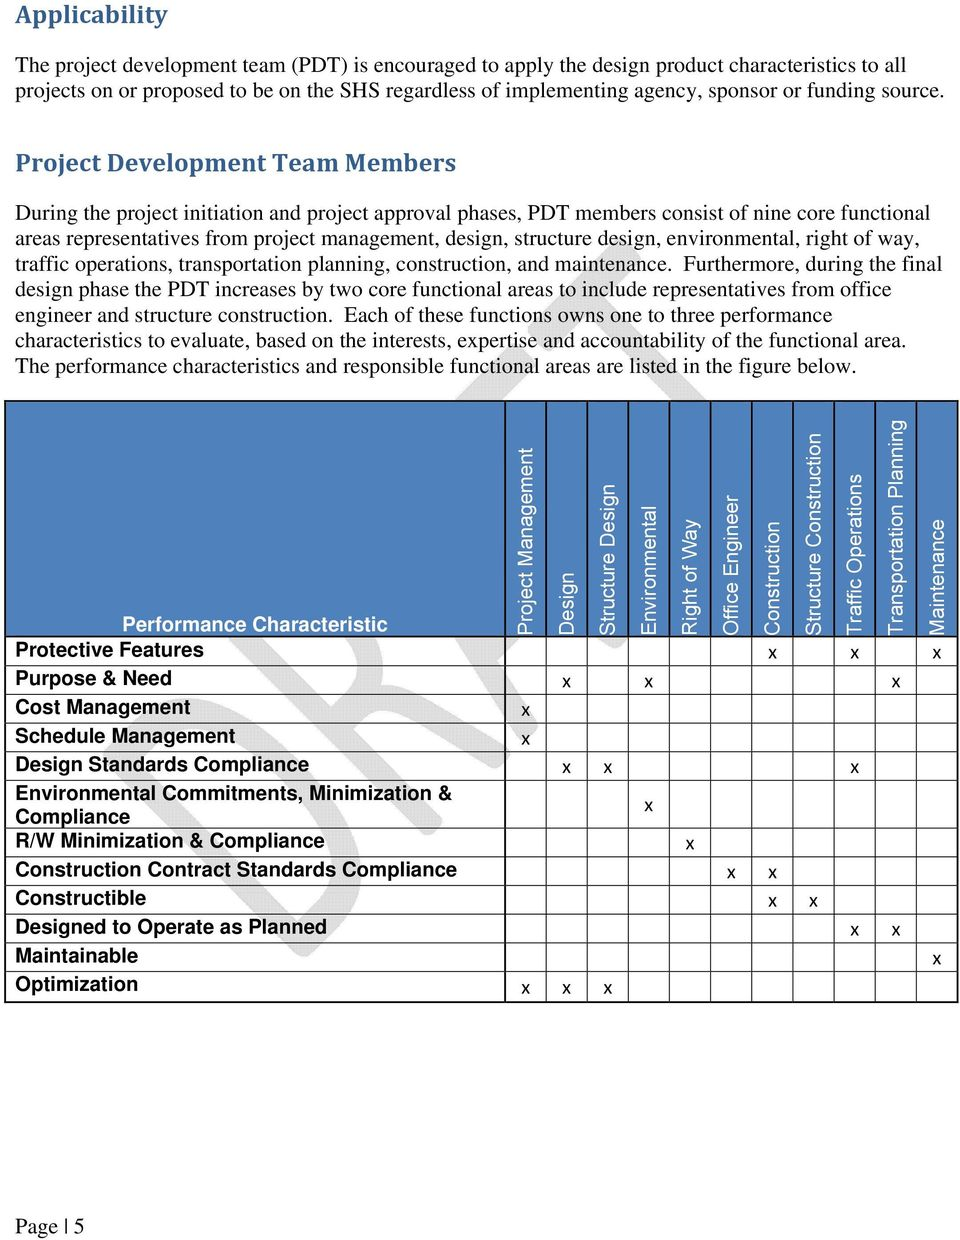 Project Development Team Members During the project initiation and project approval phases, PDT members consist of nine core functional areas representatives from project management, design,